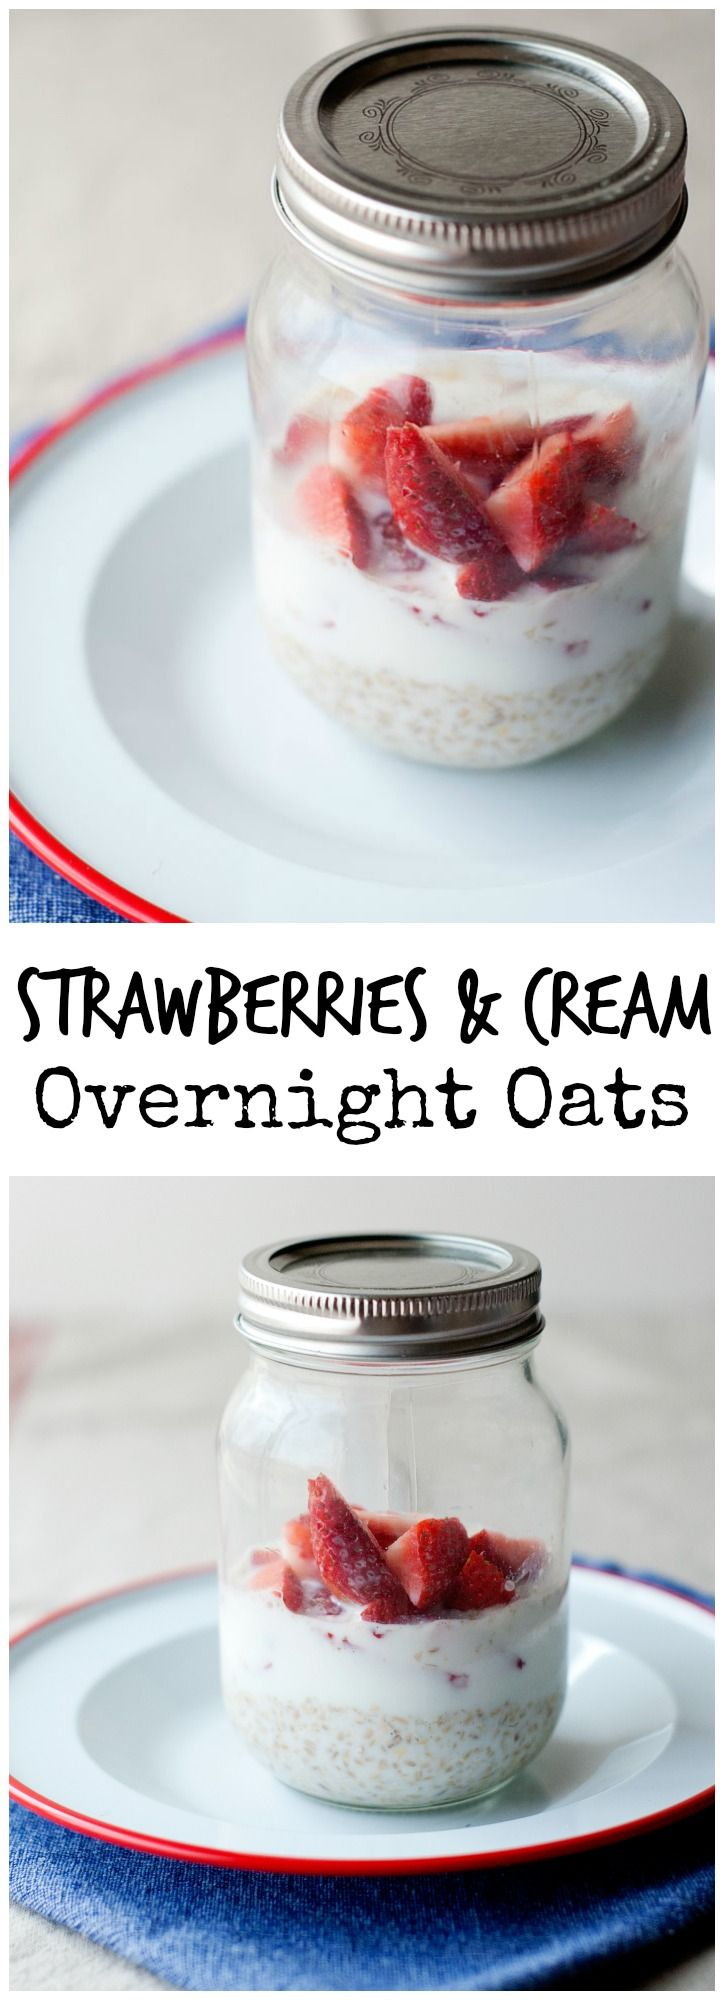 Strawberries & Cream Overnight Oats from LauraFuentes.com